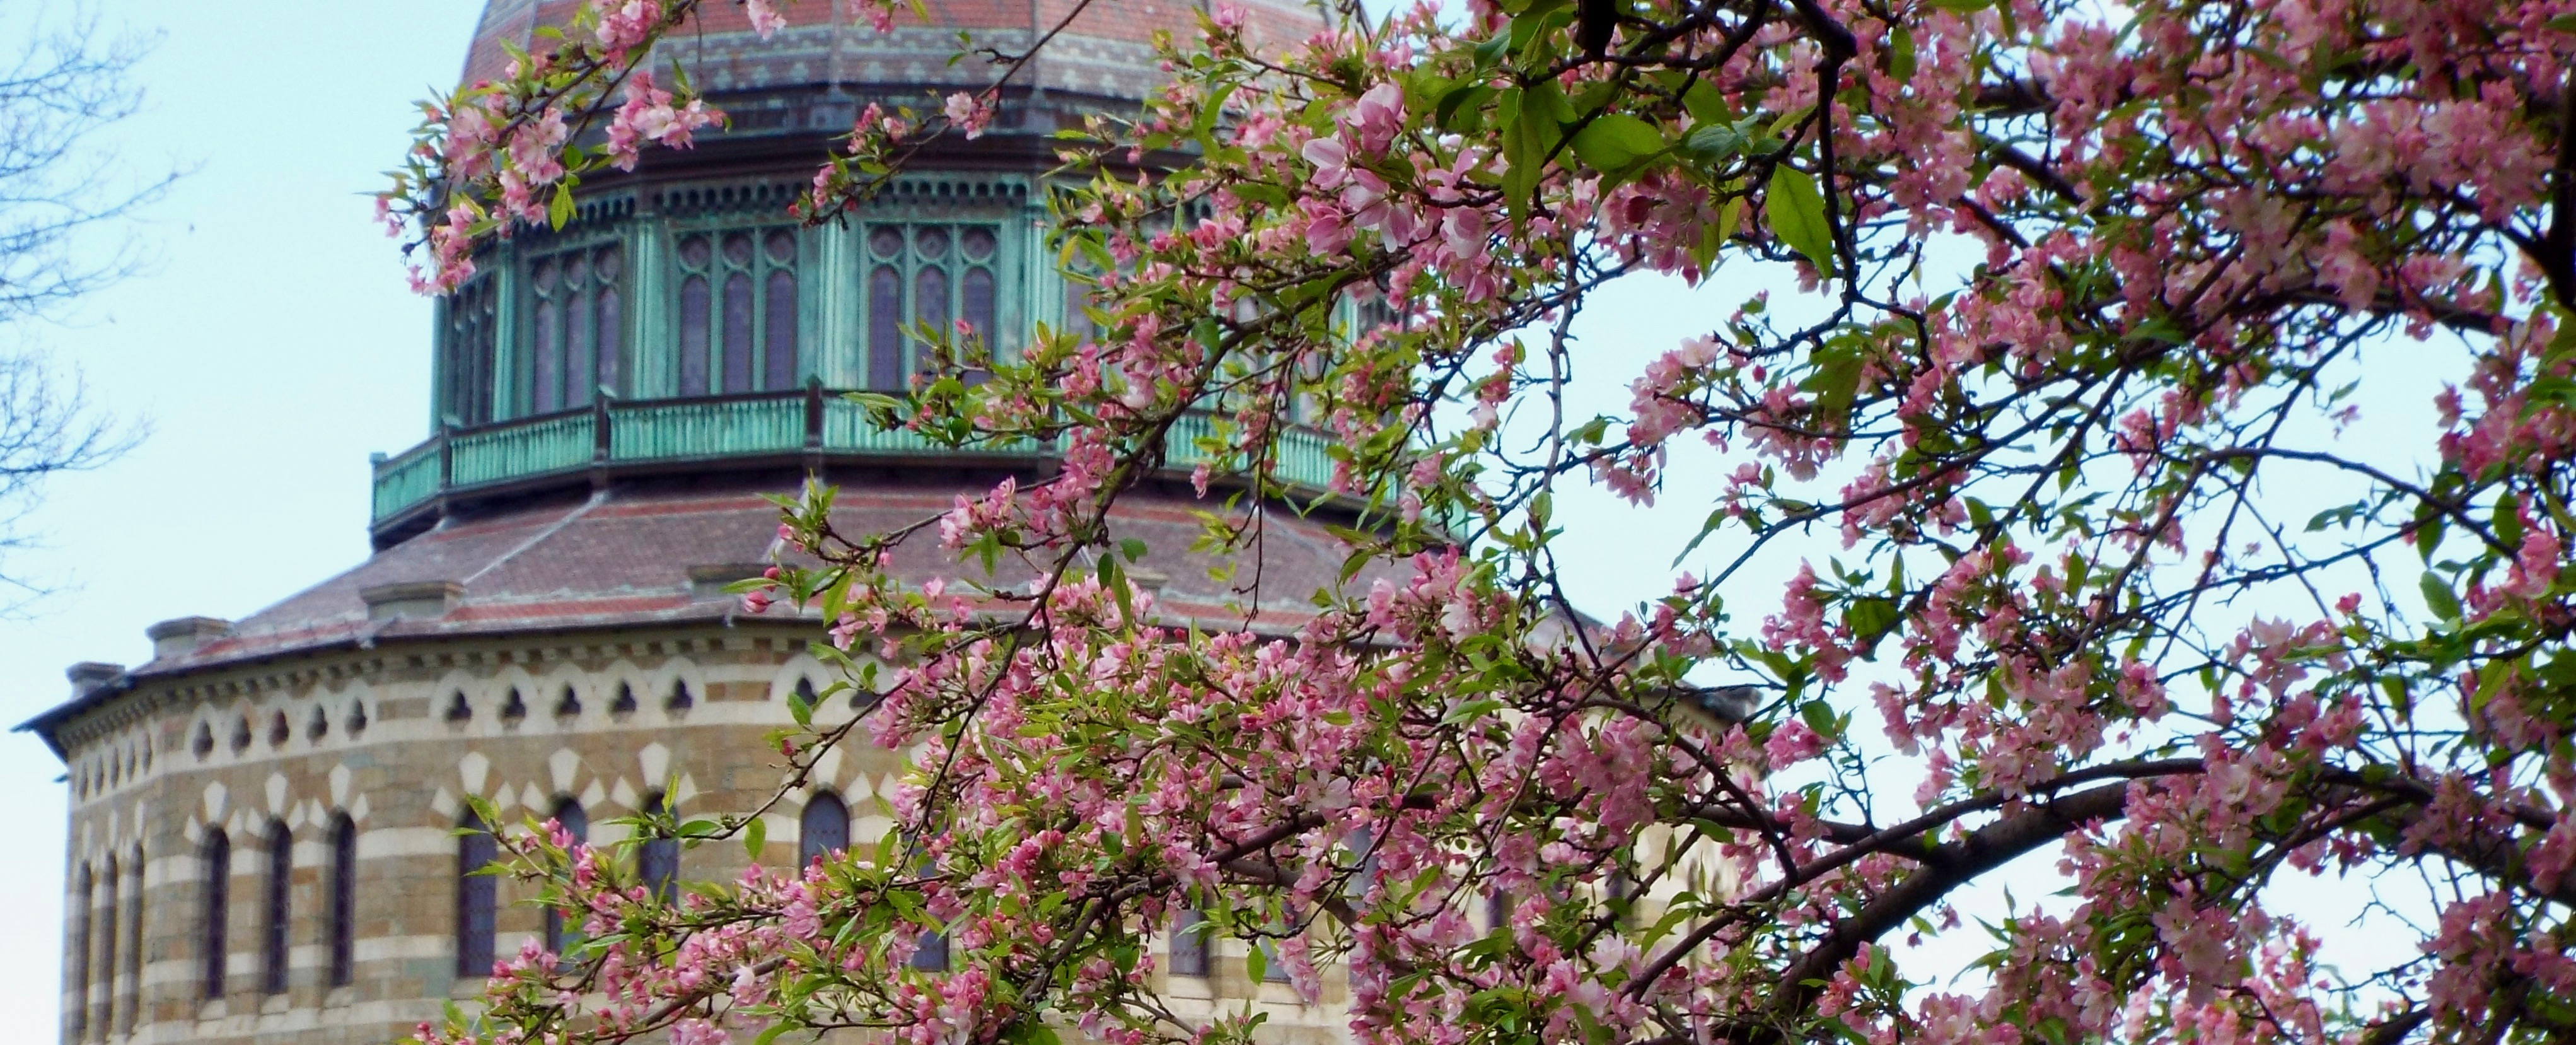 The Nott Memorial in spring